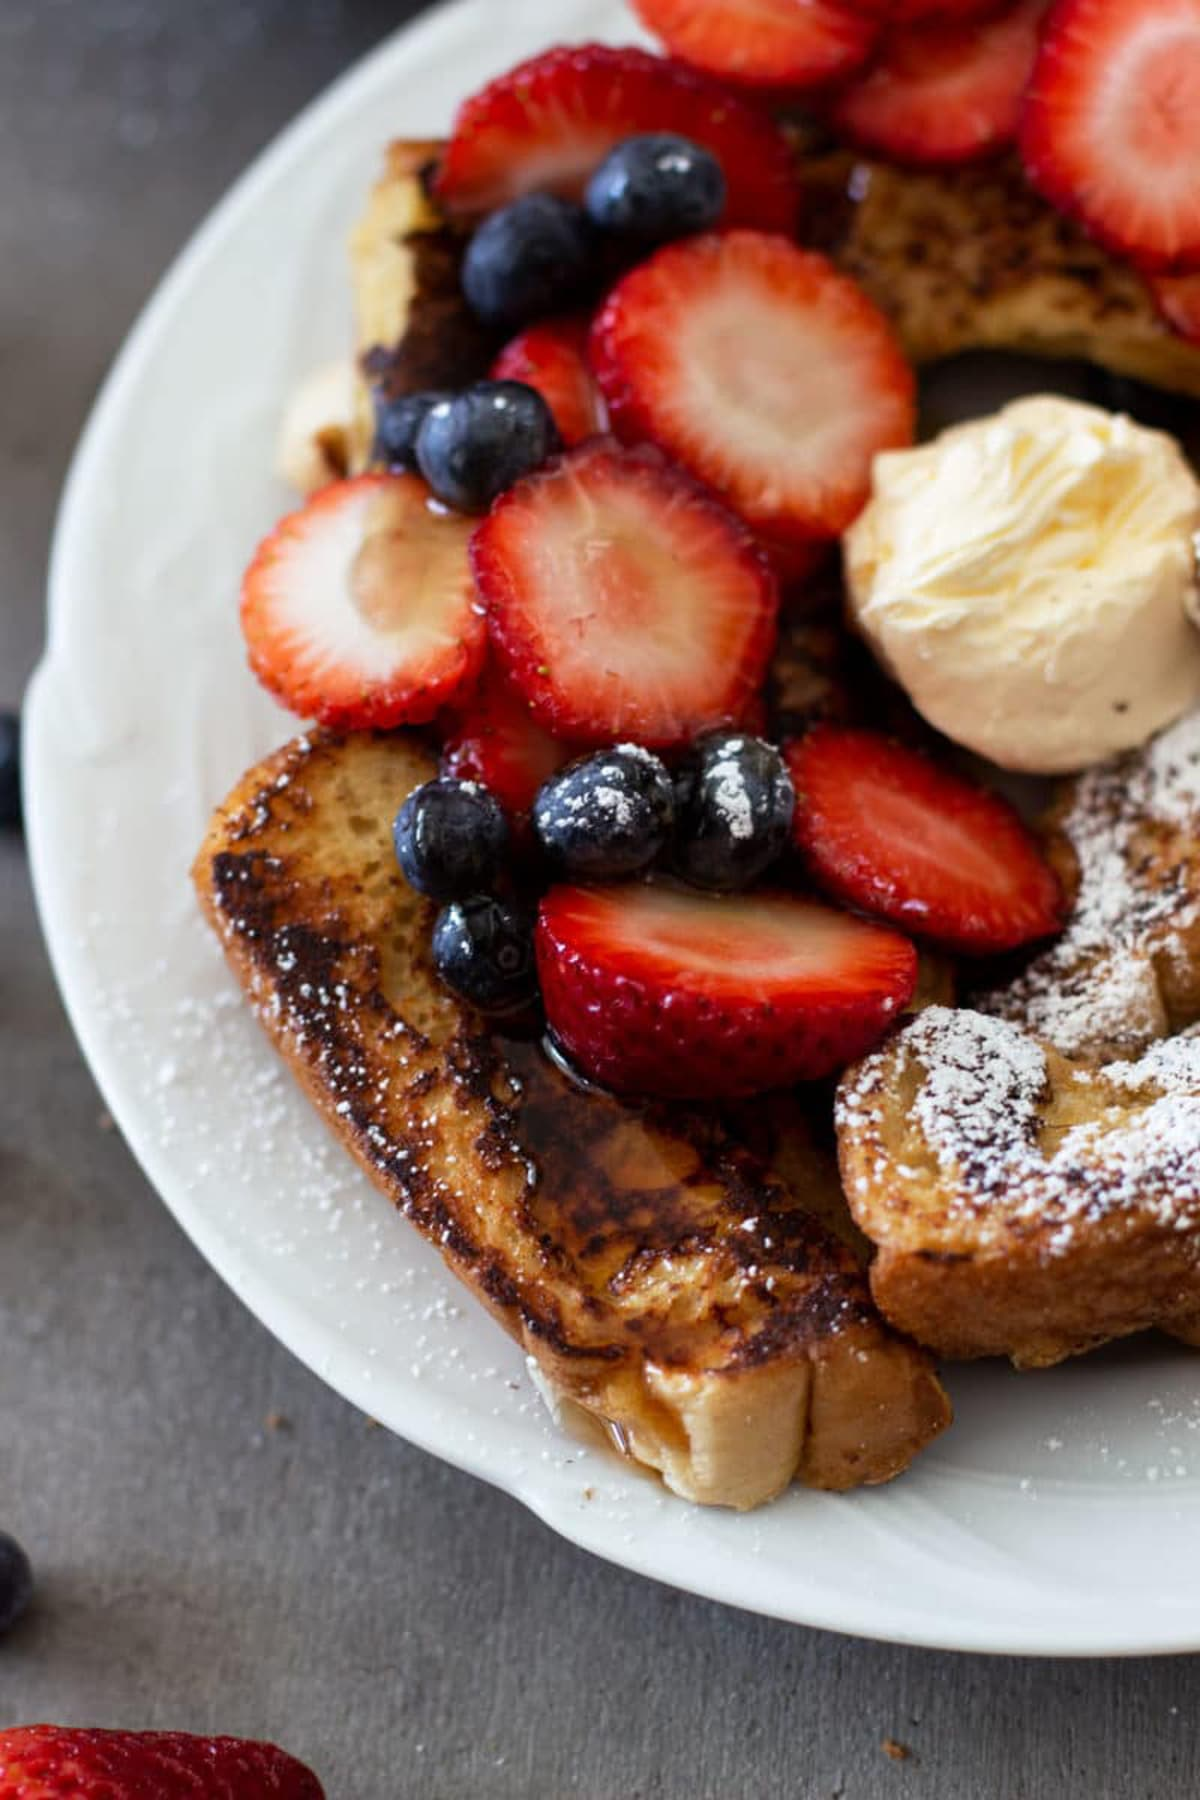 A plate of french toast sticks topped with butter, strawberries, blueberries and powdered sugar.